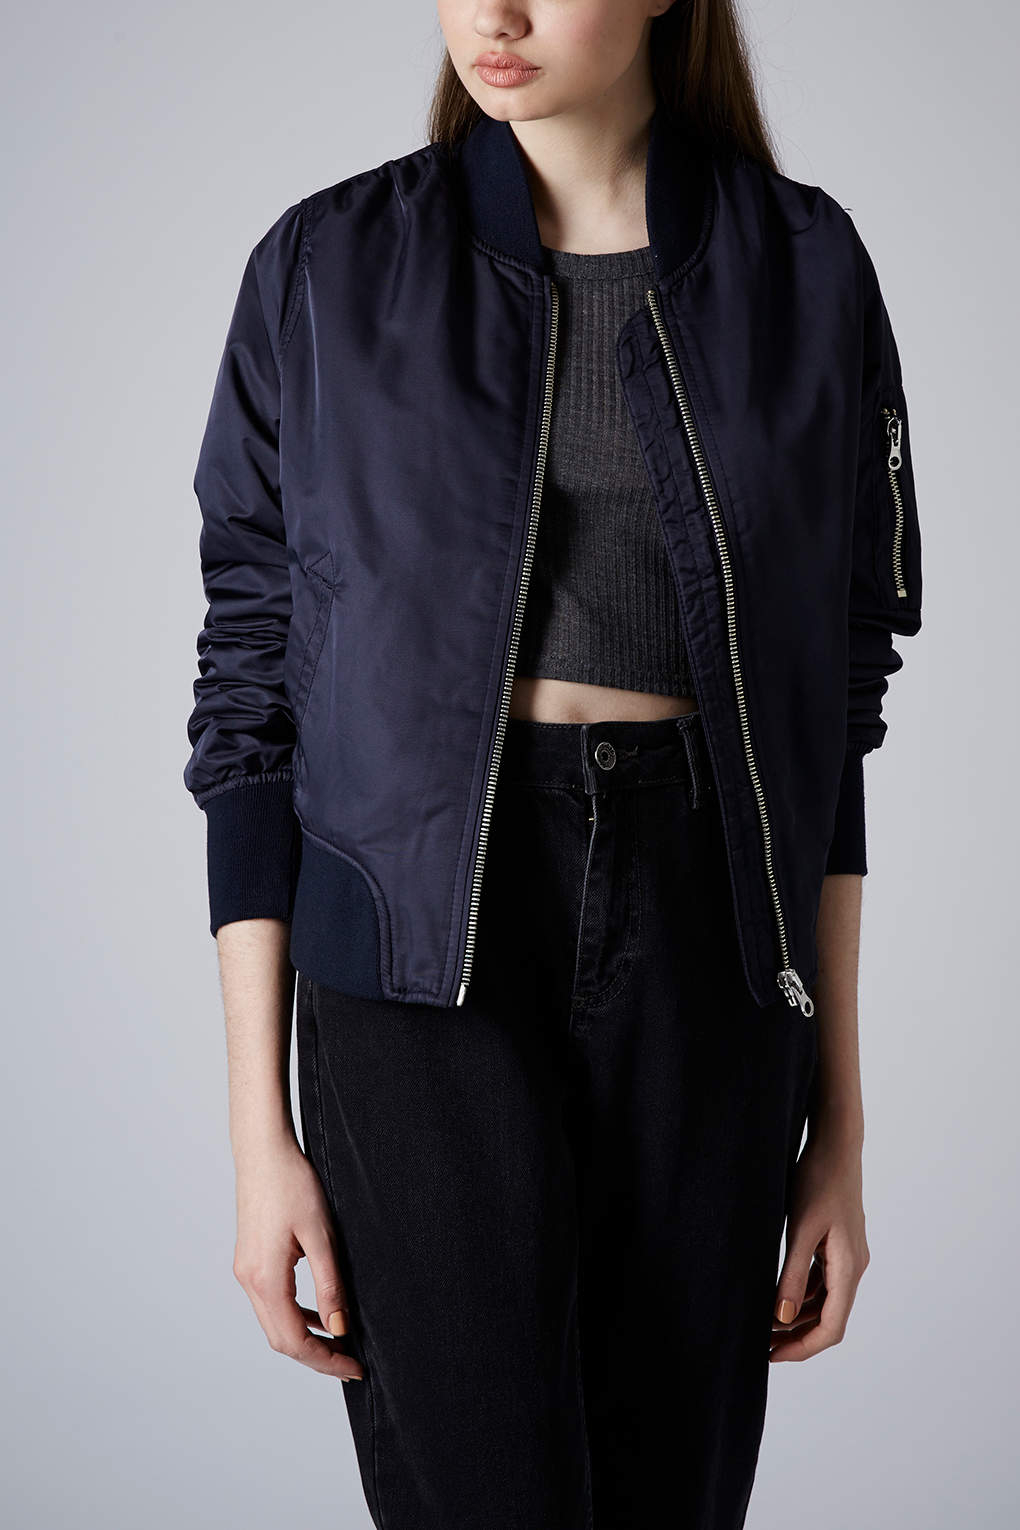 Topshop Ultimate Ma1 Bomber Jacket in Blue | Lyst